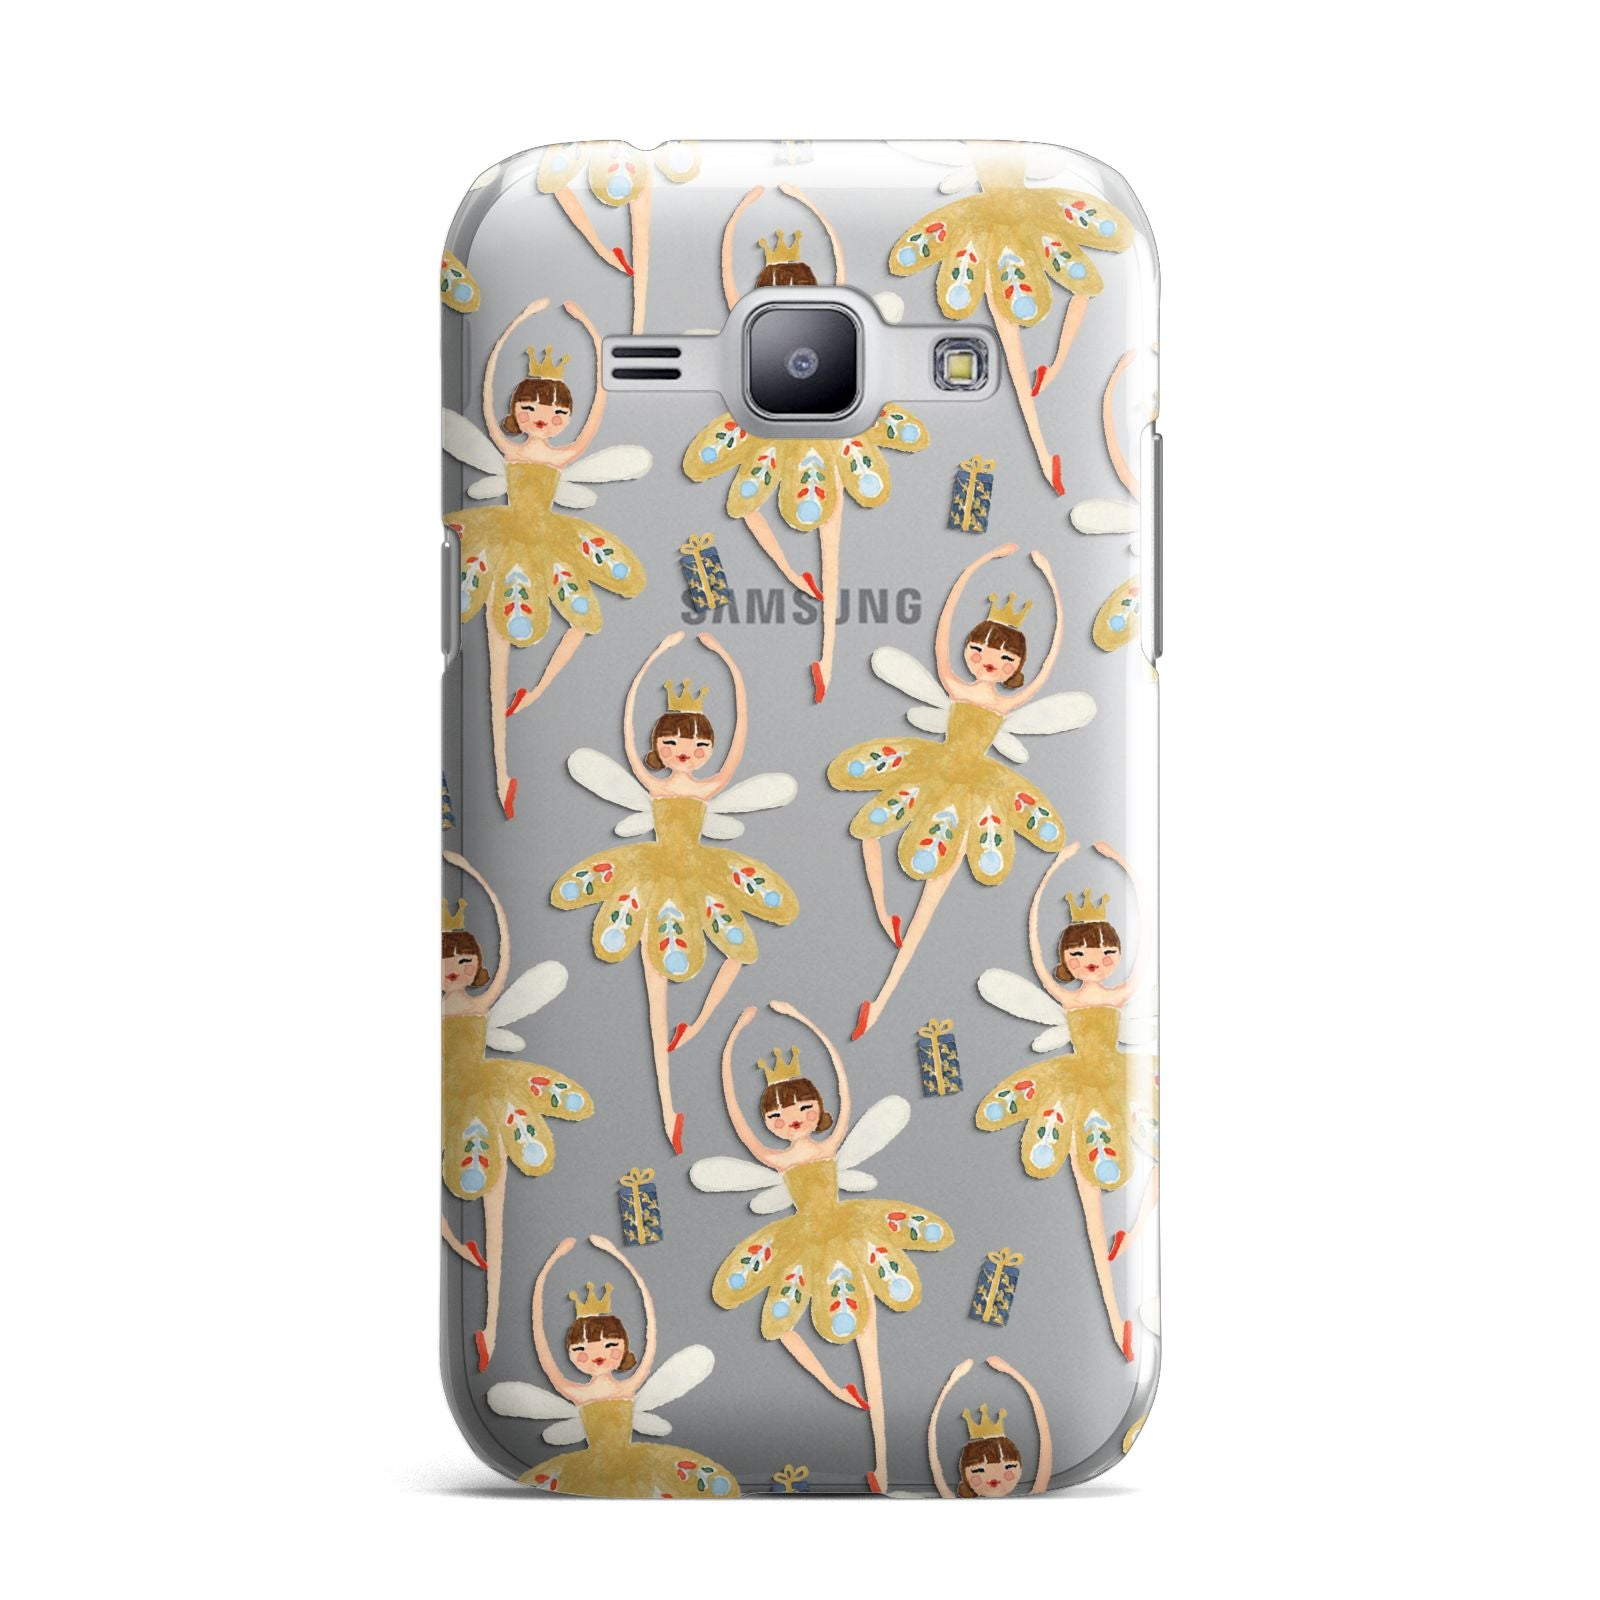 Dancing ballerina princess Samsung Galaxy J1 2015 Case